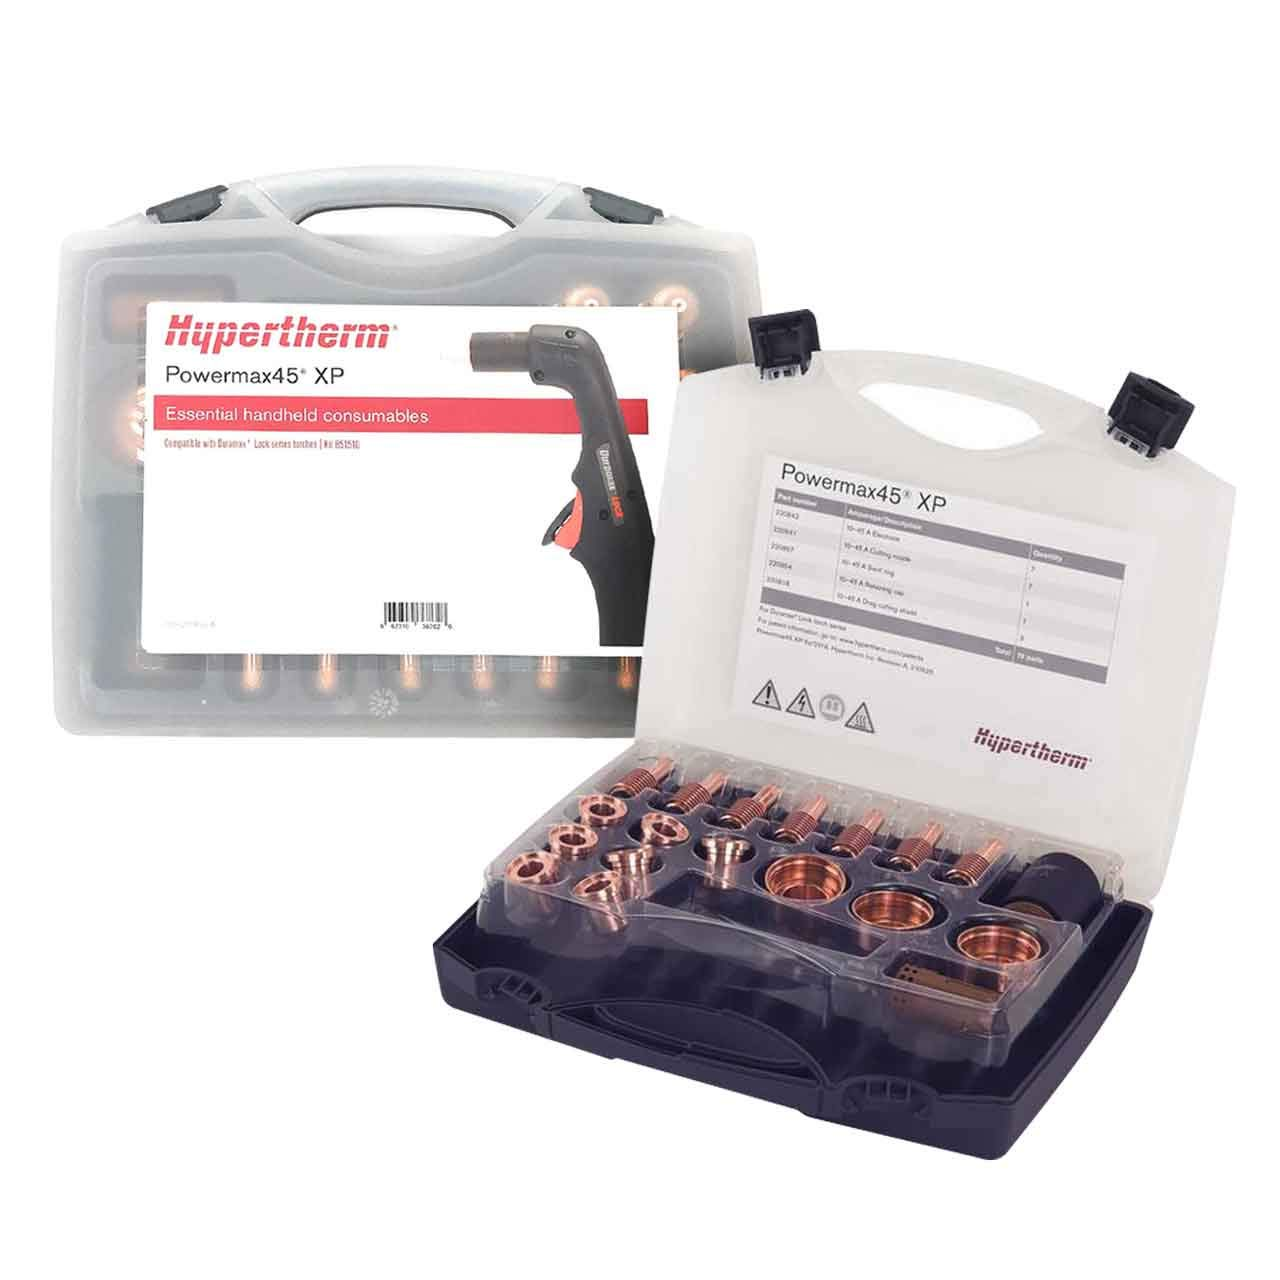 Hypertherm Powermax45 XP Essential Handheld Cutting Consumable kit by Hypertherm